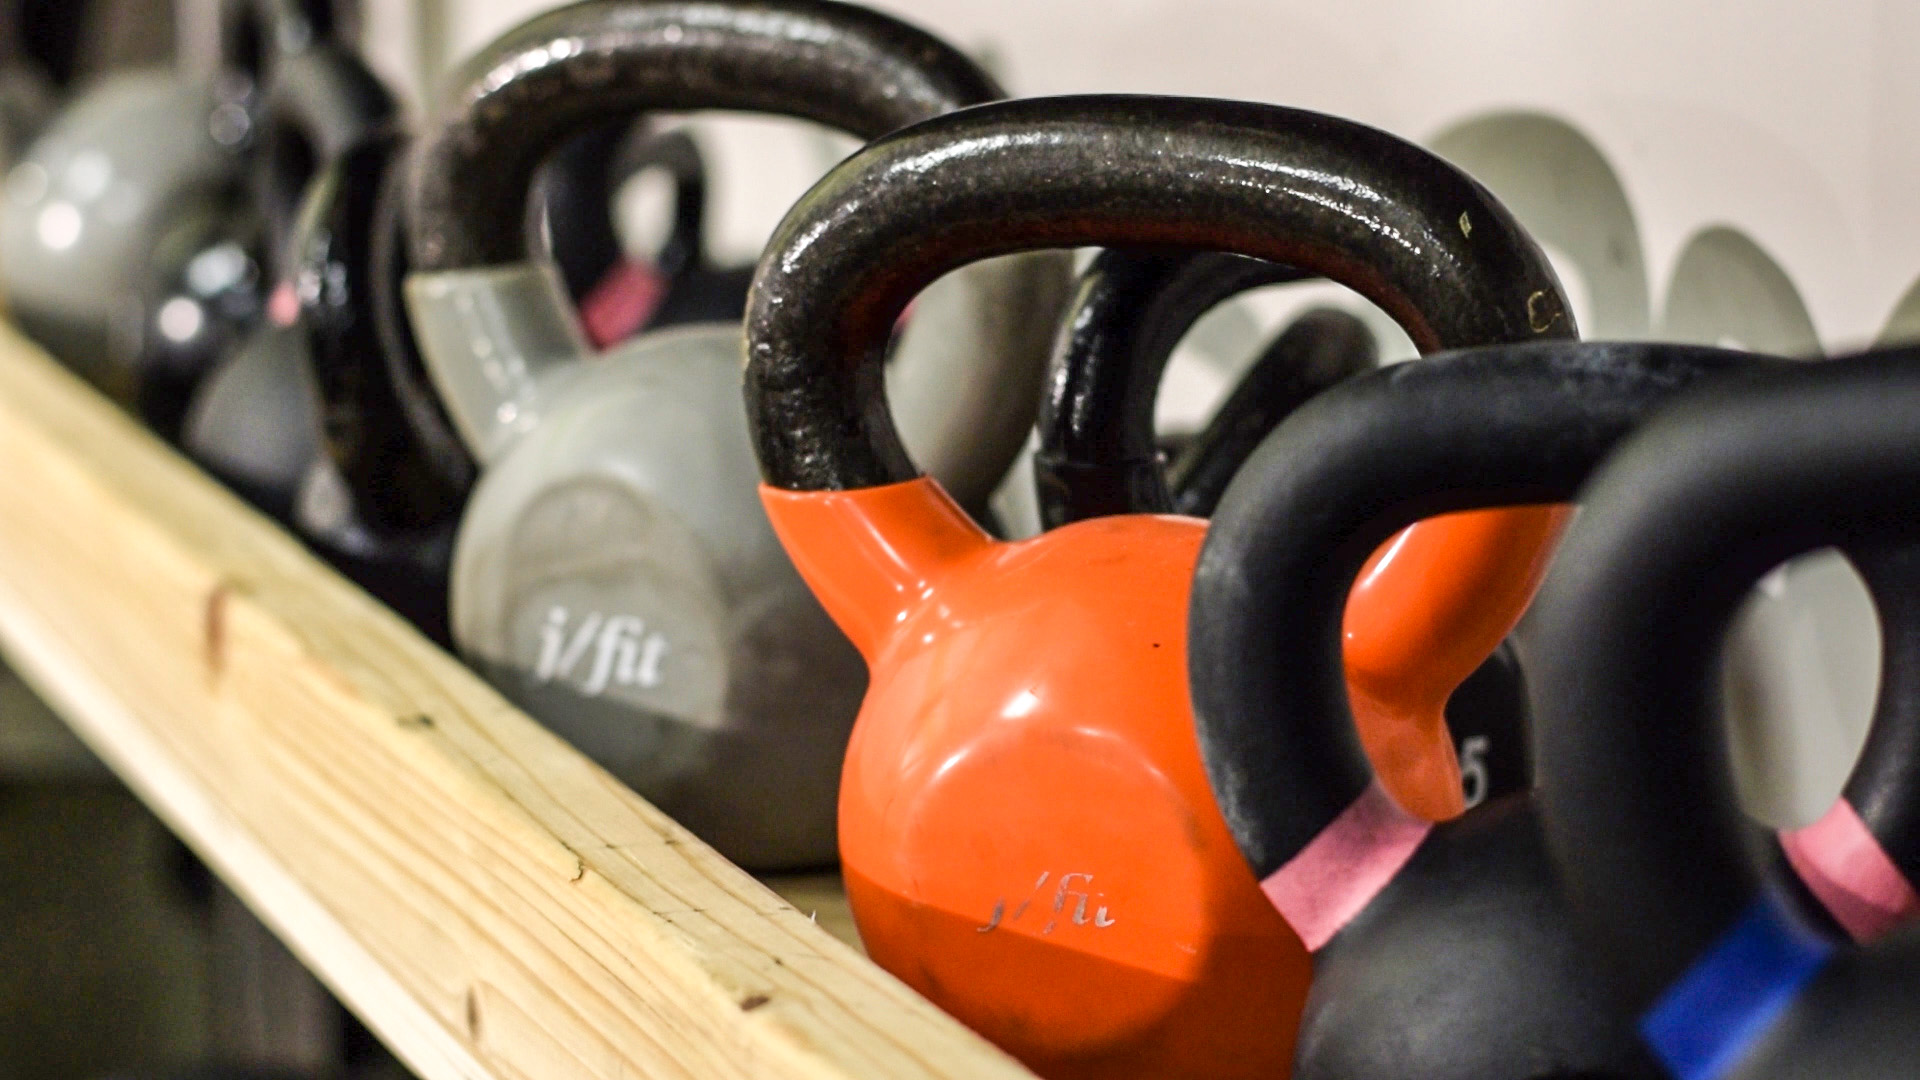 8 kettle bells on rack.jpg